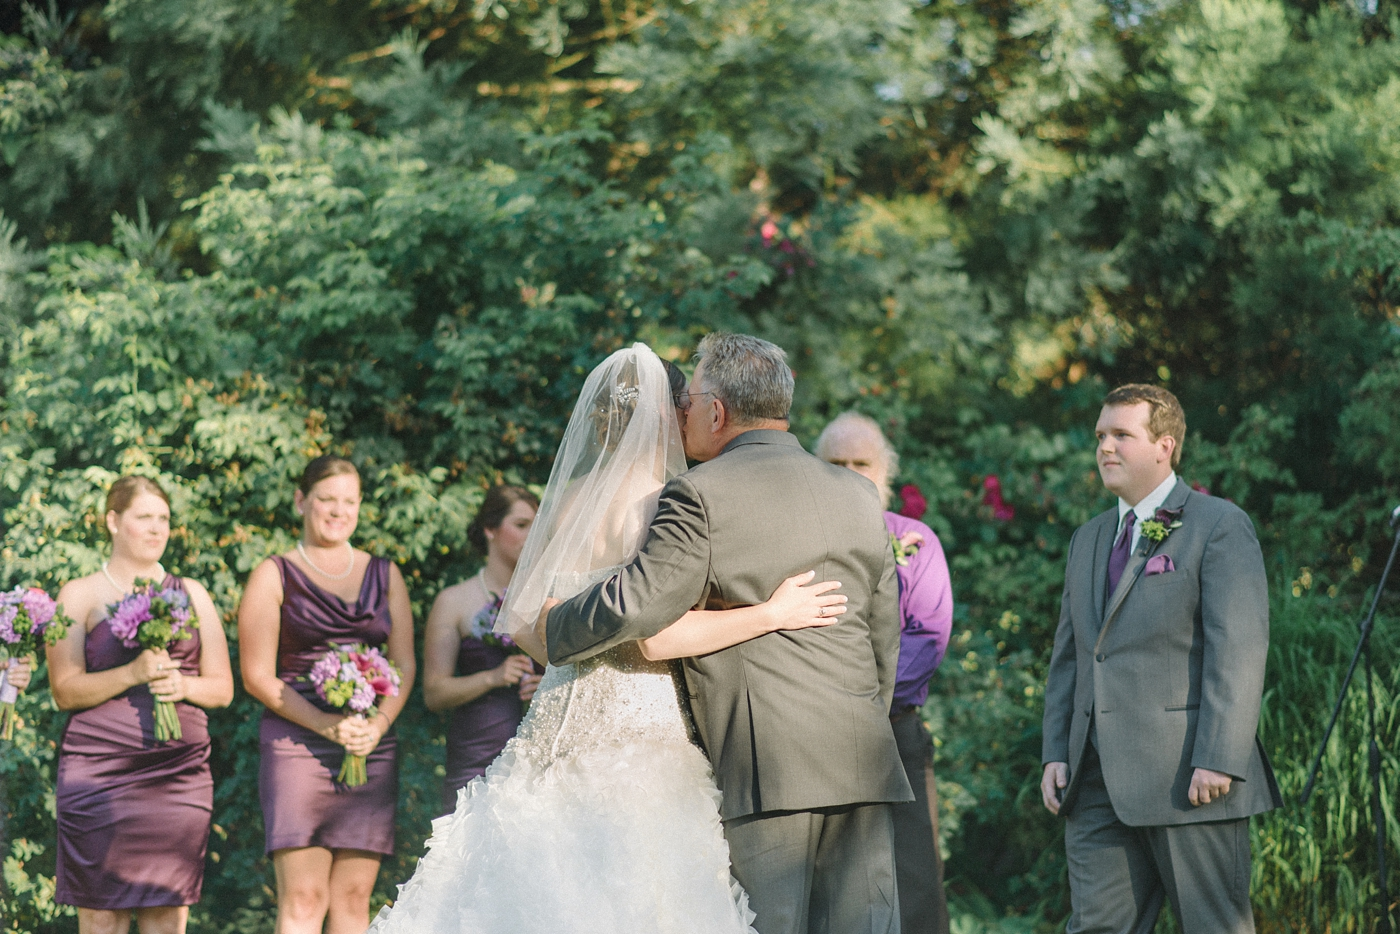 portland-oregon-wedding-photographer-bride-and-father-at-aisle-mcmenamins-edgefield-shelley-marie-photo-5